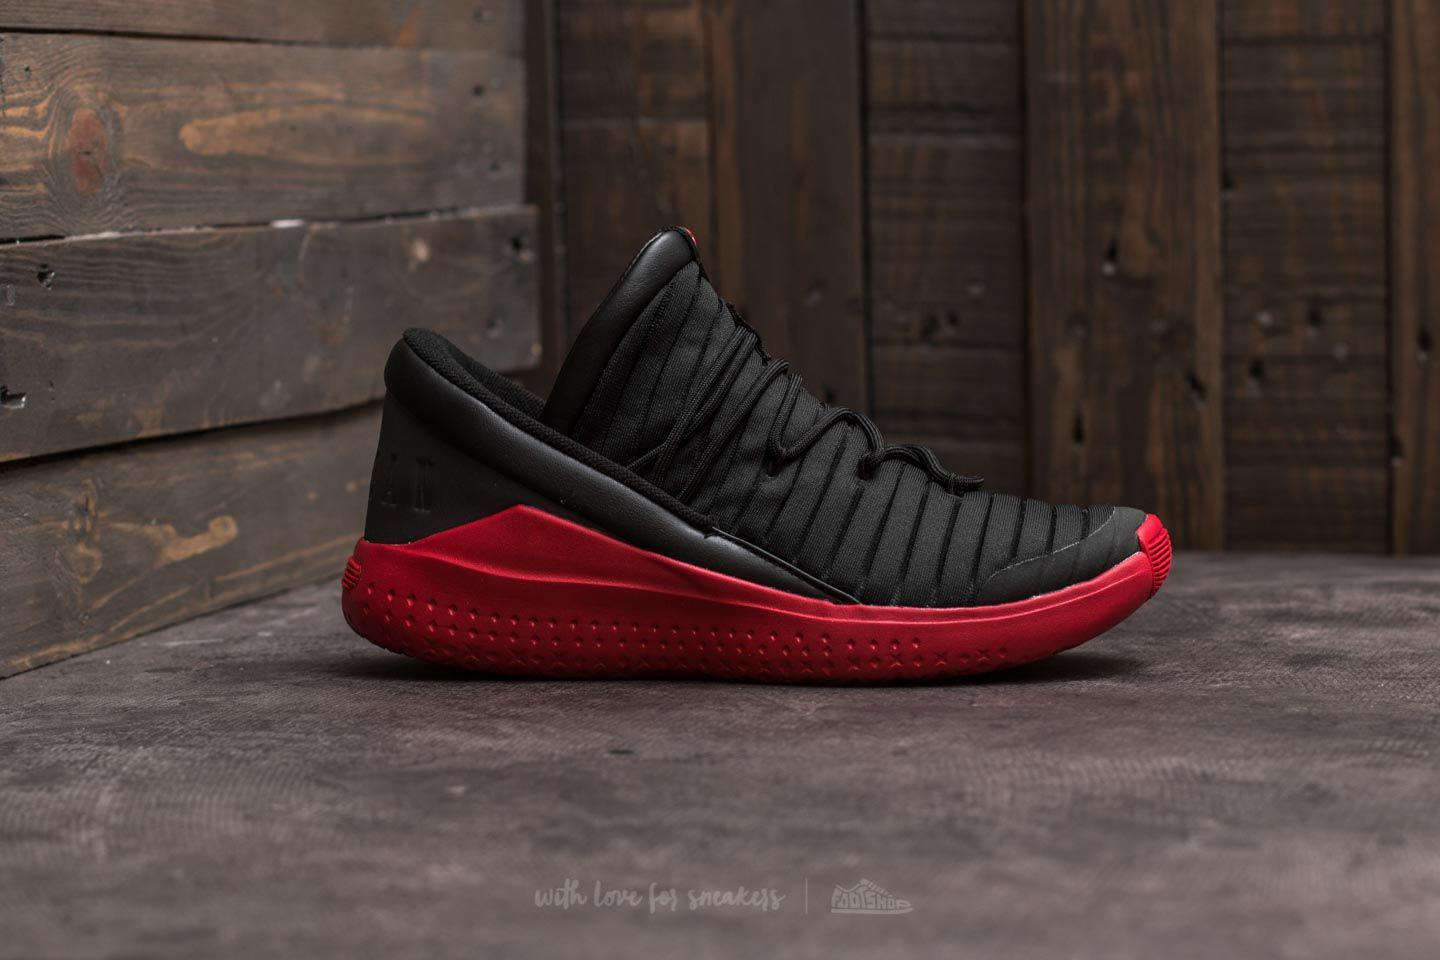 brand new 88534 d63d9 Nike Flight Luxe Black  Gym Red-gym Red in Red for Men - Lyst